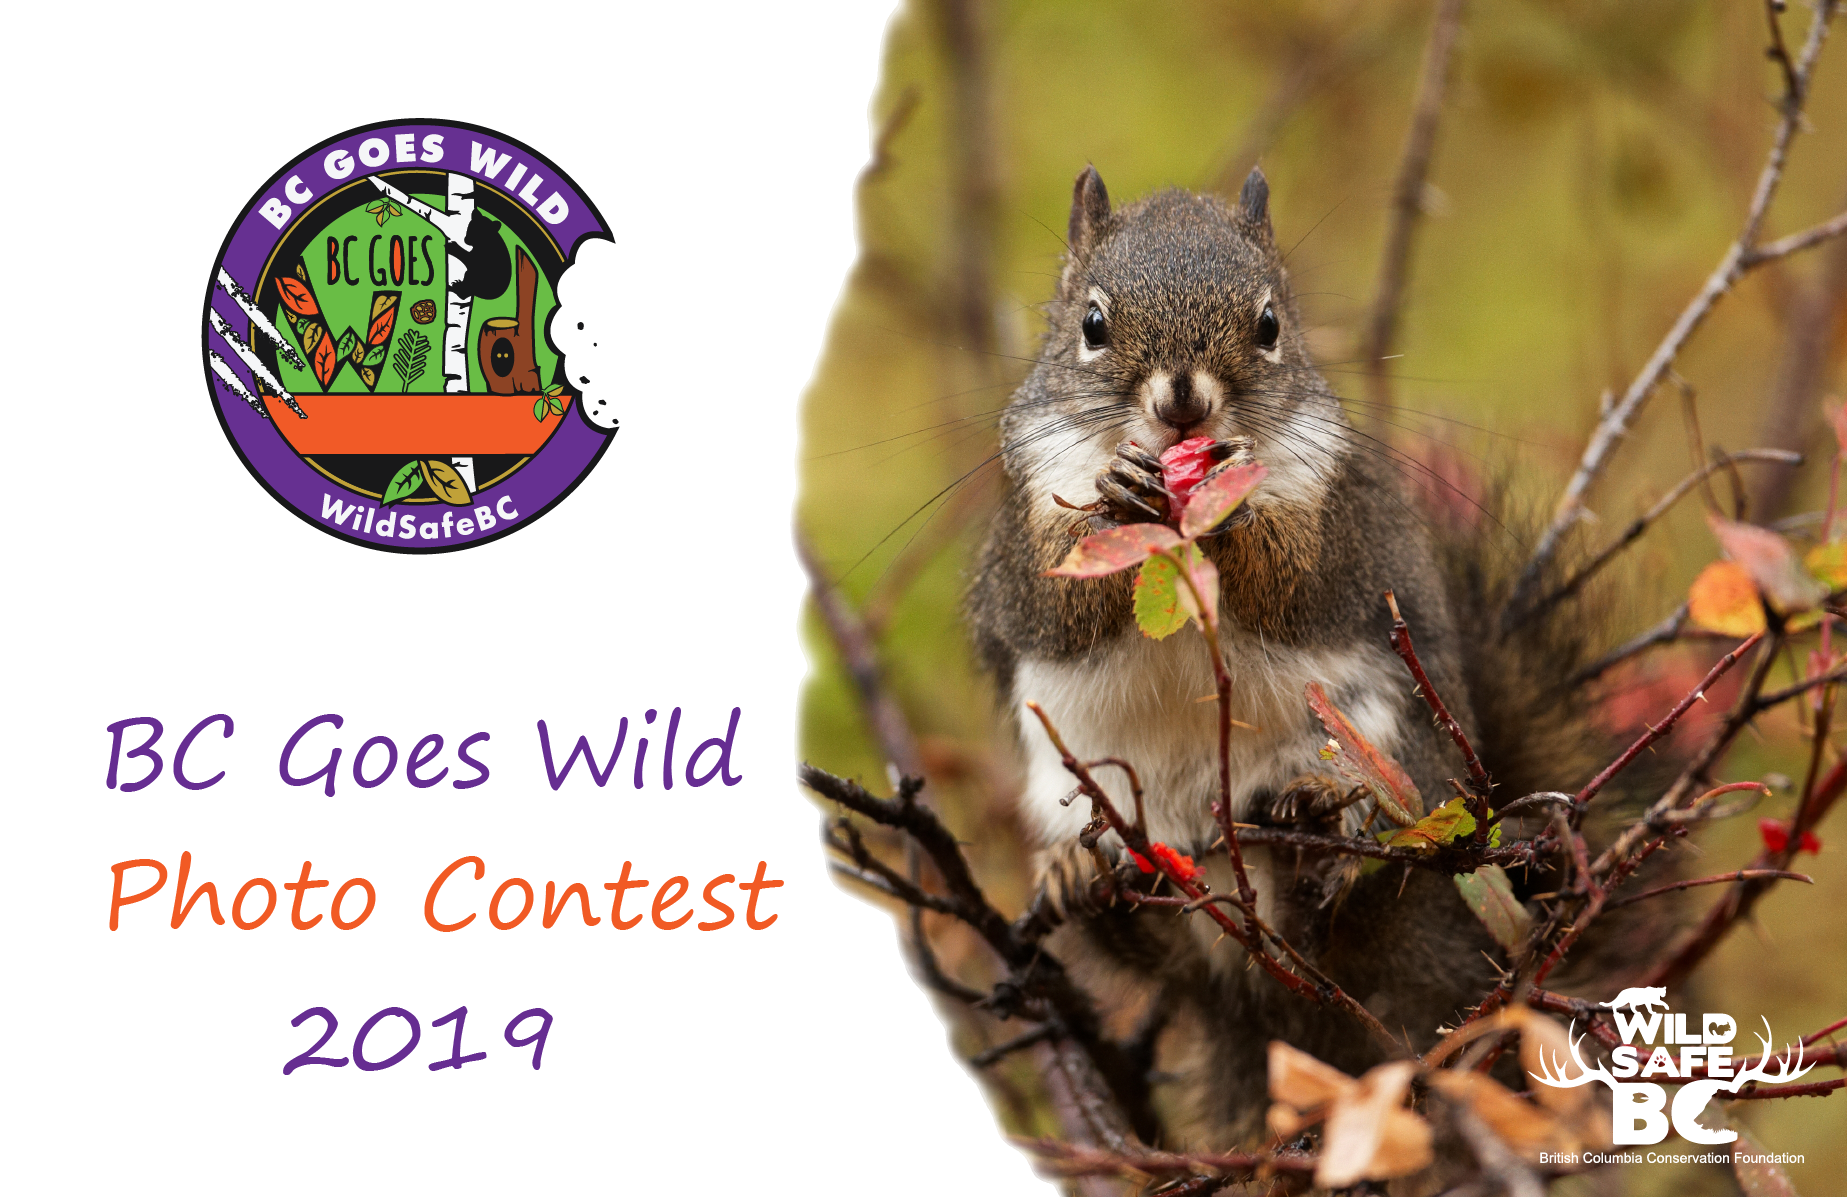 BCGW Photo Contest 2019 website banner